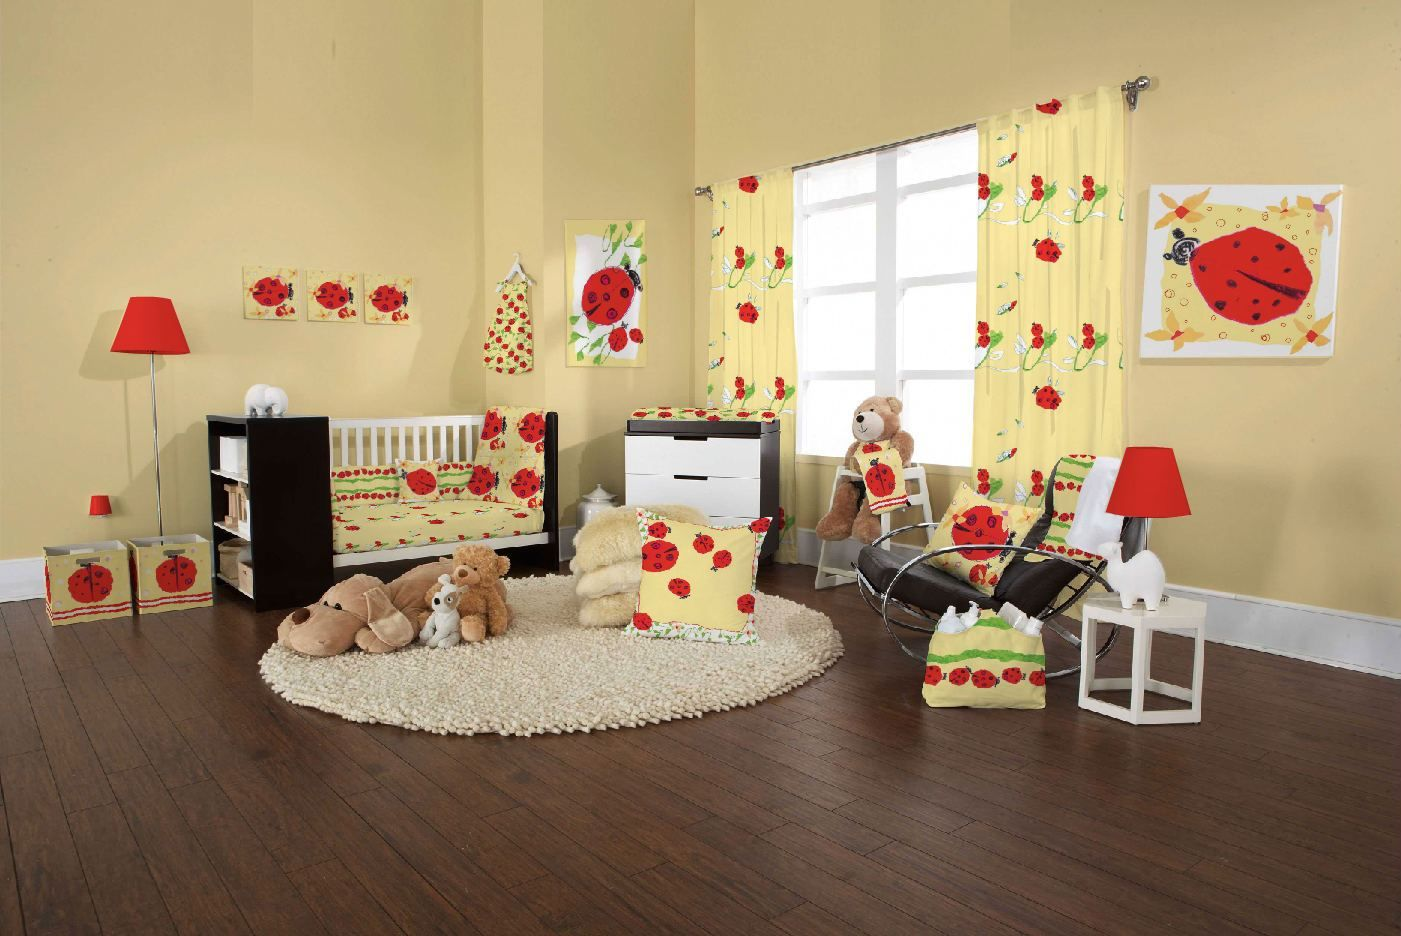 Baby Nursery. Attractive Baby Nursery Idea In Brown Wall And ...